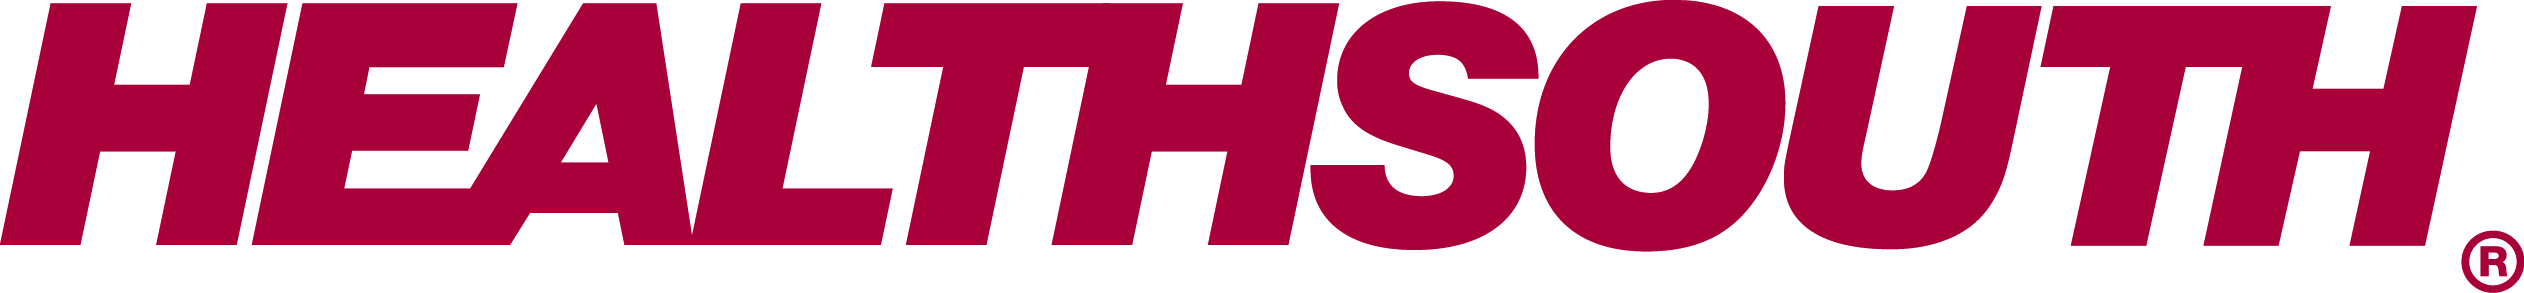 healthsouth-corp-logo